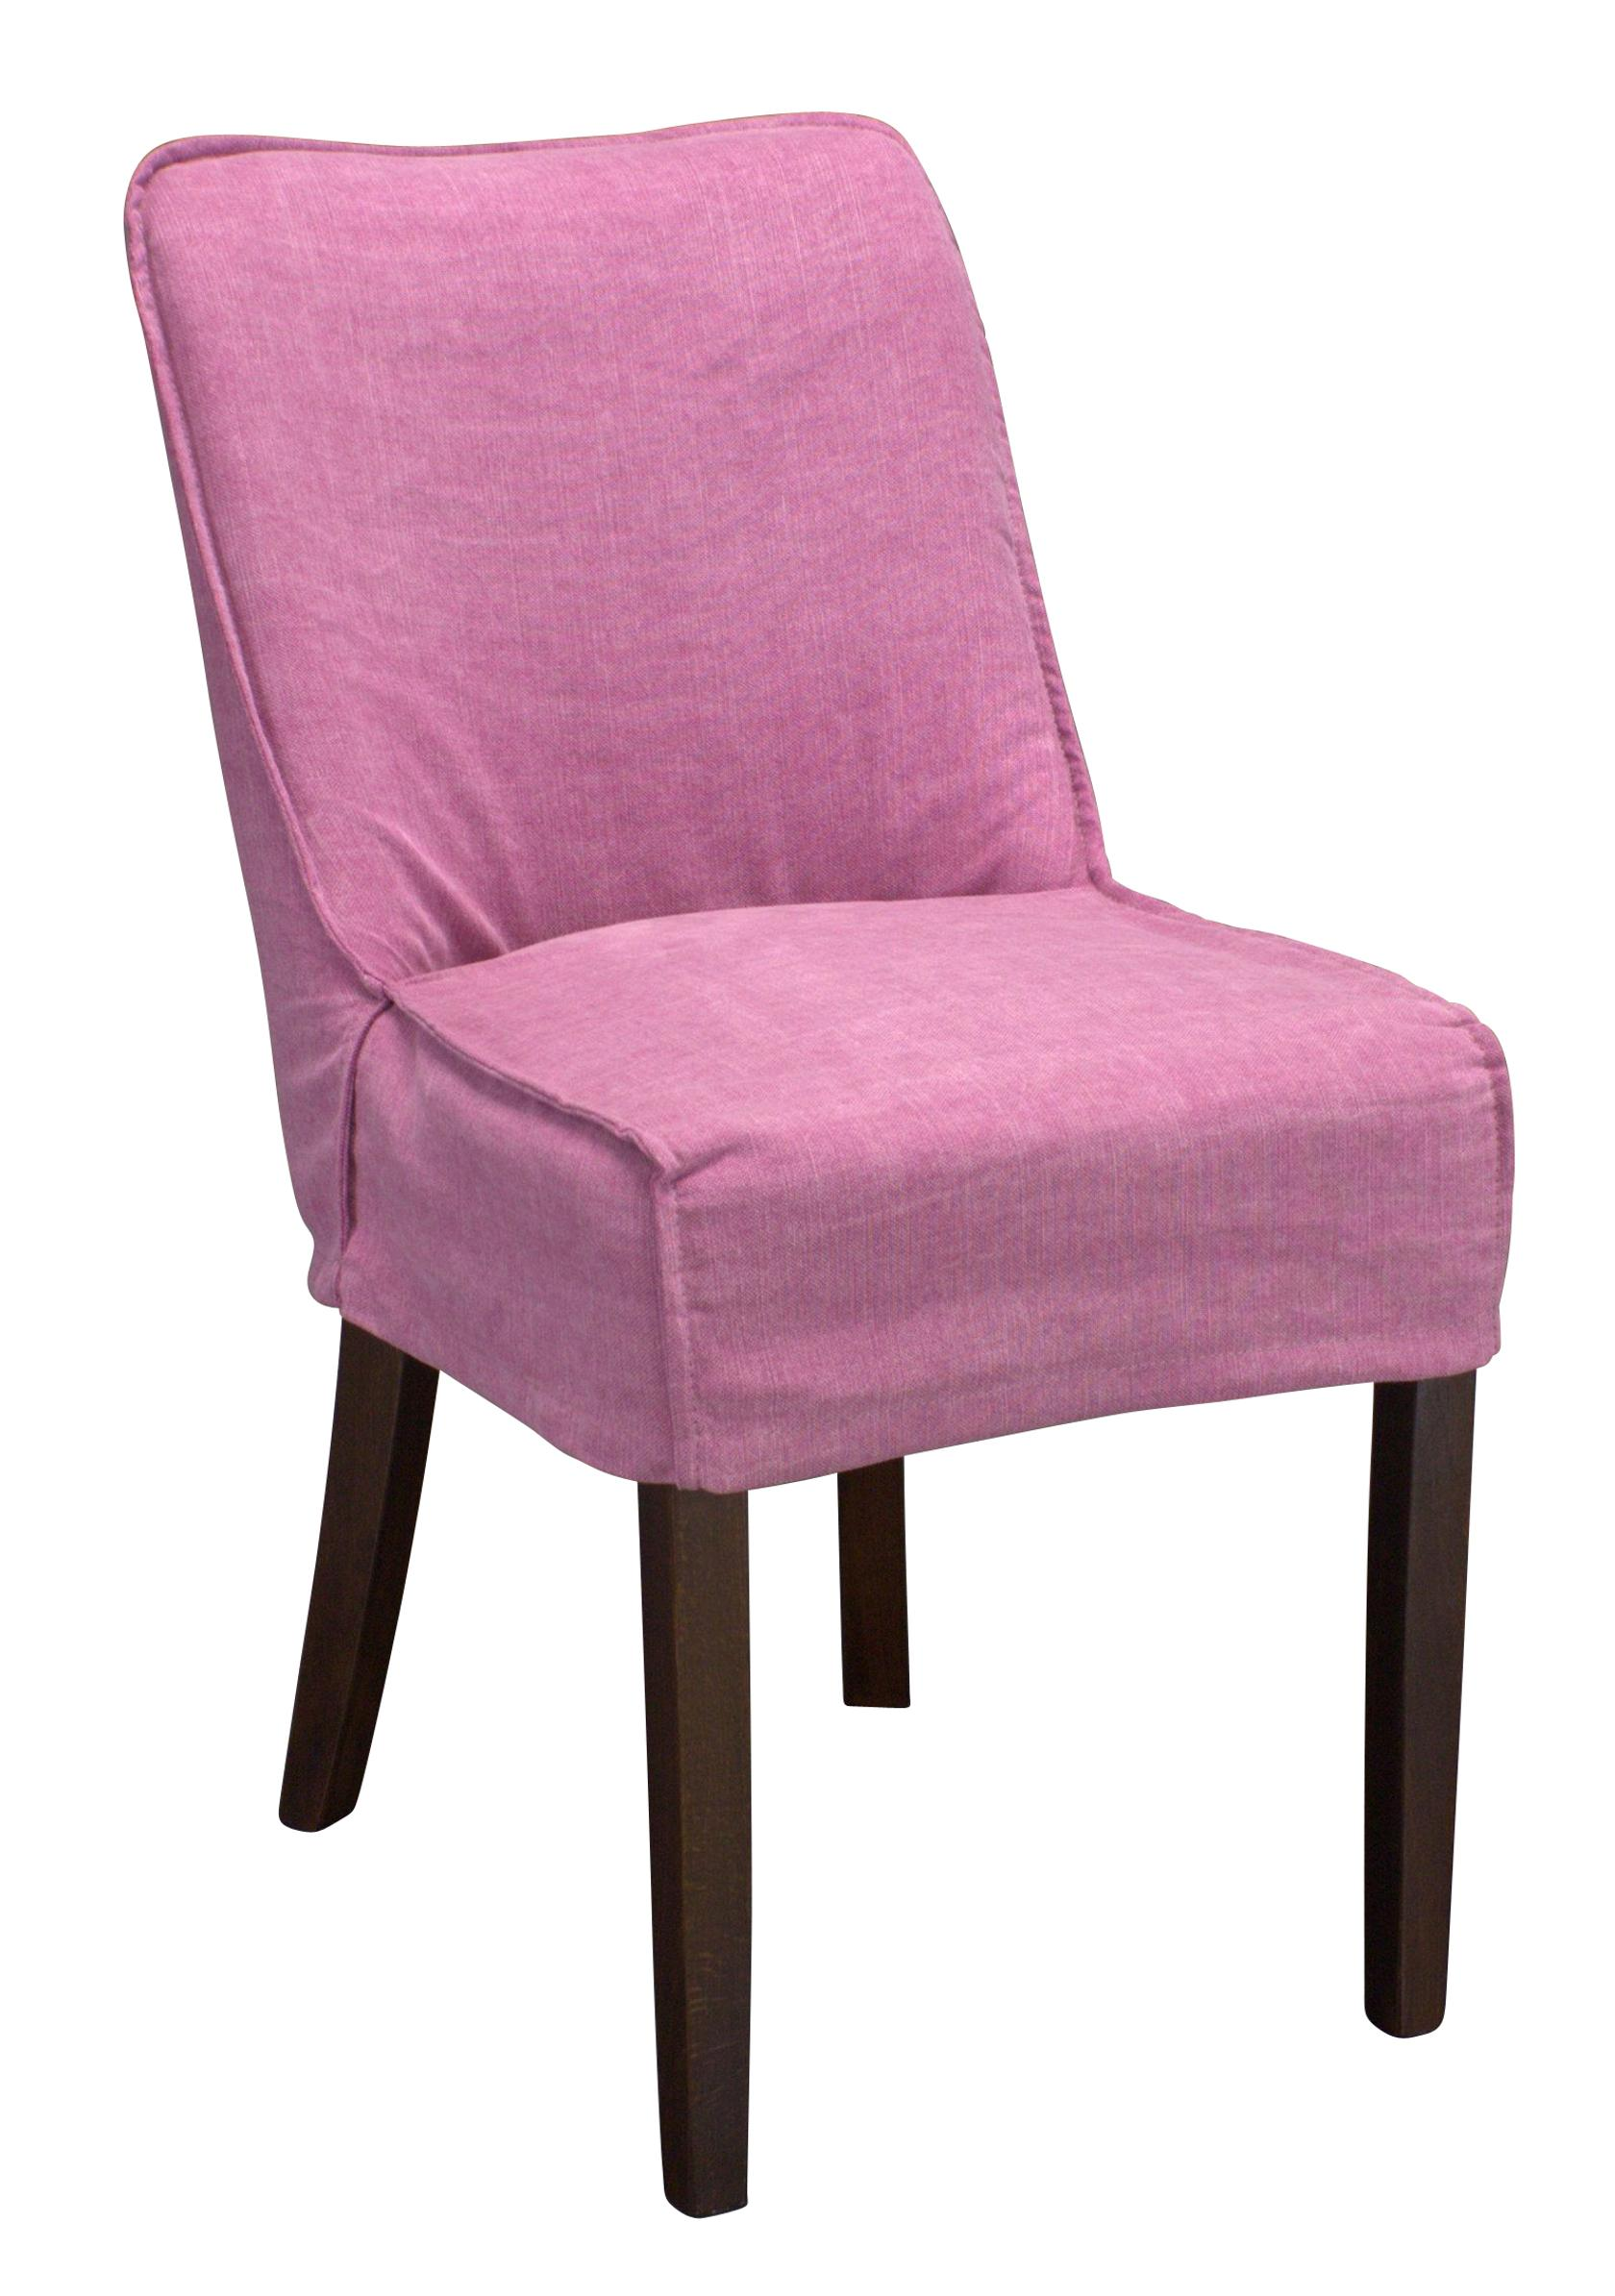 diningchair vincent loose cover 24410 diningchair vincent loose cover